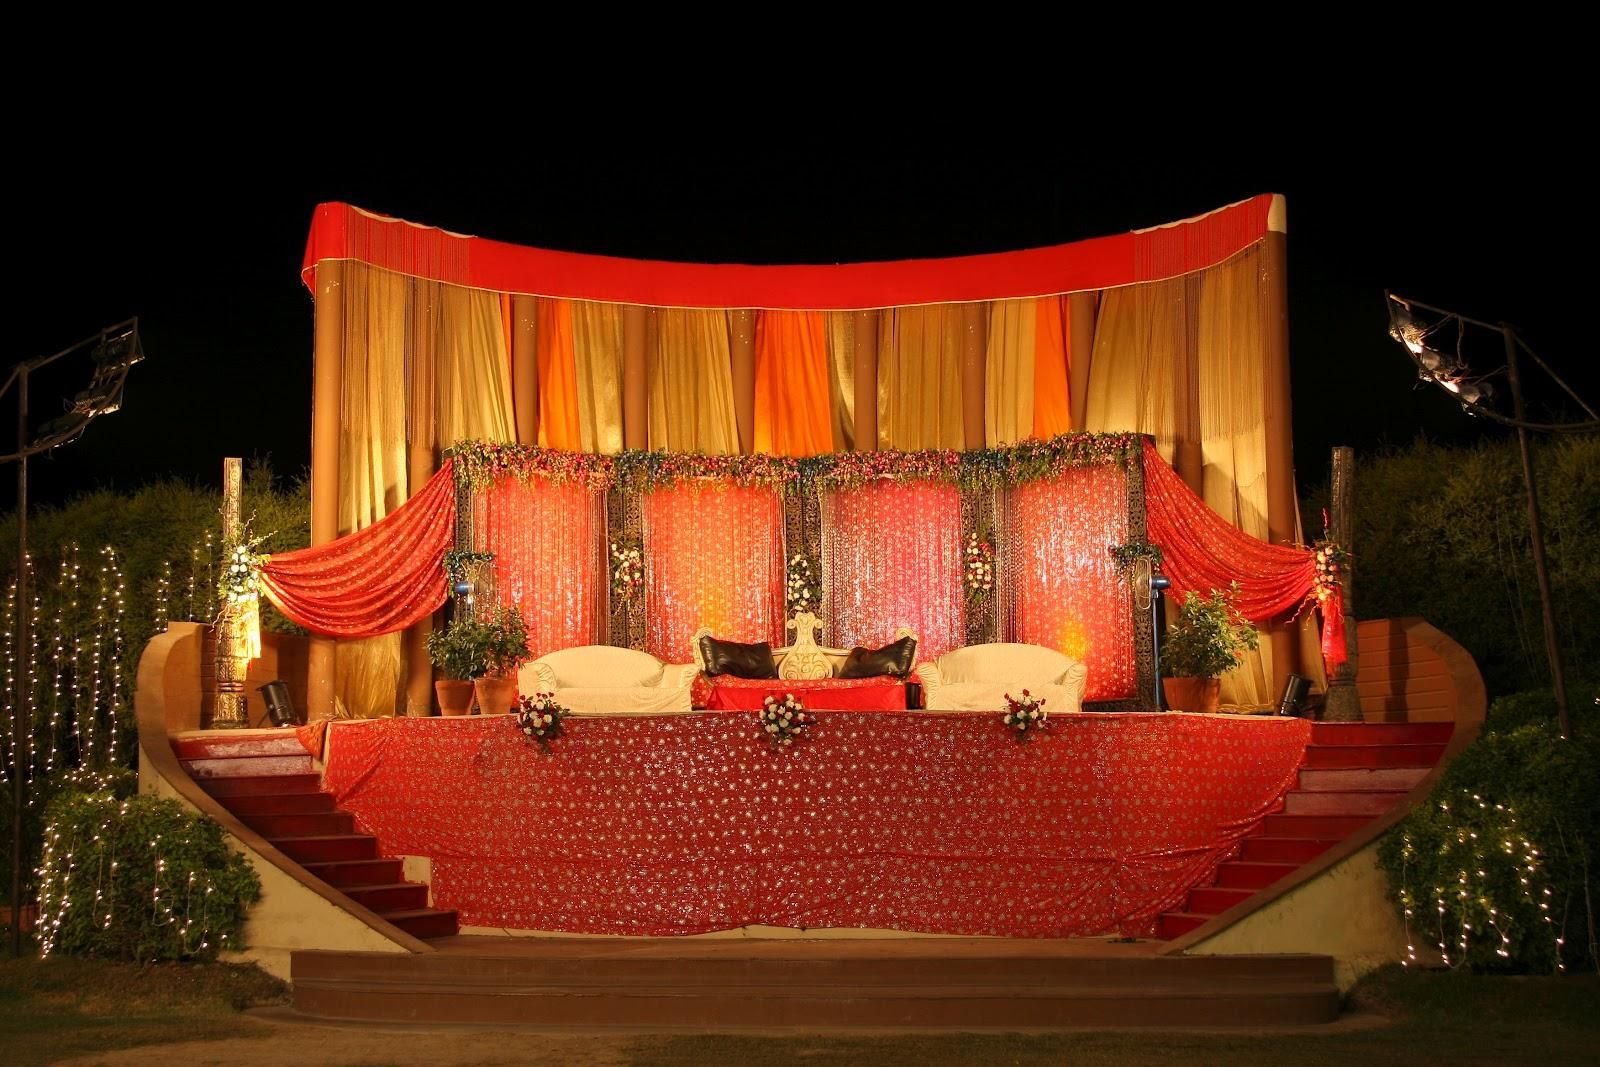 Outdoor indian wedding stage decorations wedding stage decoration in india wedding theme Latest decoration ideas